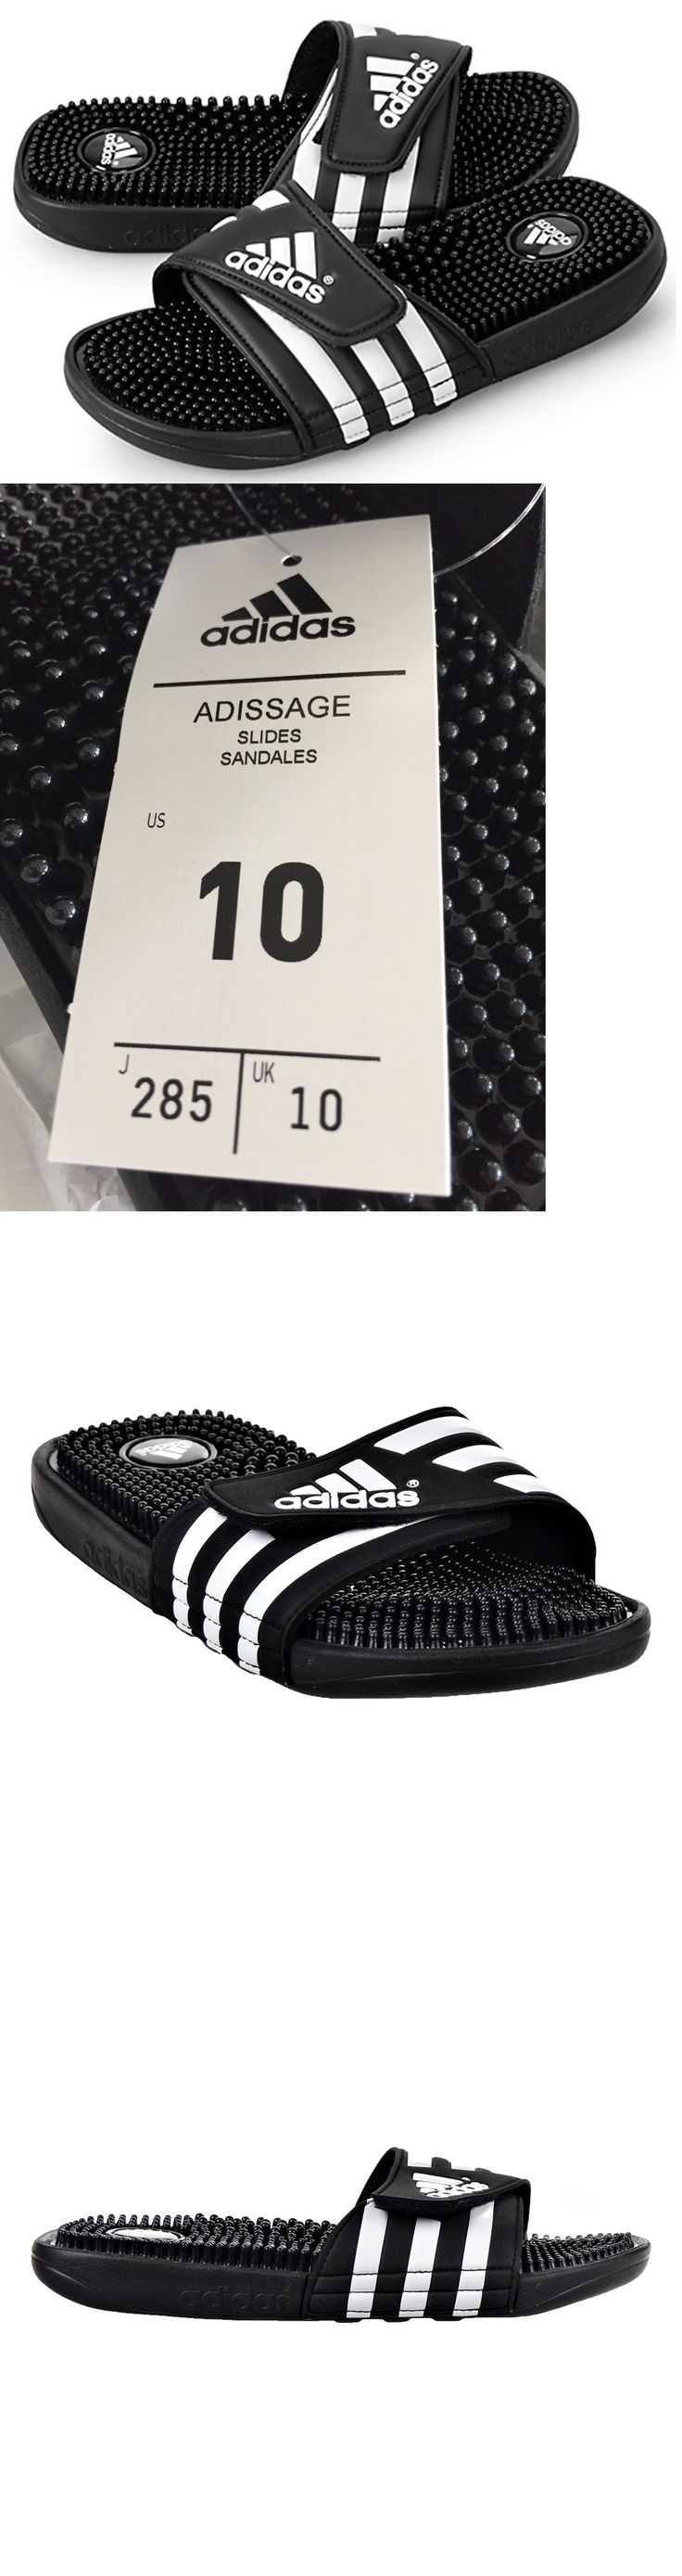 Sandals and Flip Flops 11504: New Nwt Adidas Adissage 078260 Black White Slides Sandals Flip Flops Mens Sz 10 -> BUY IT NOW ONLY: $34.95 on eBay!